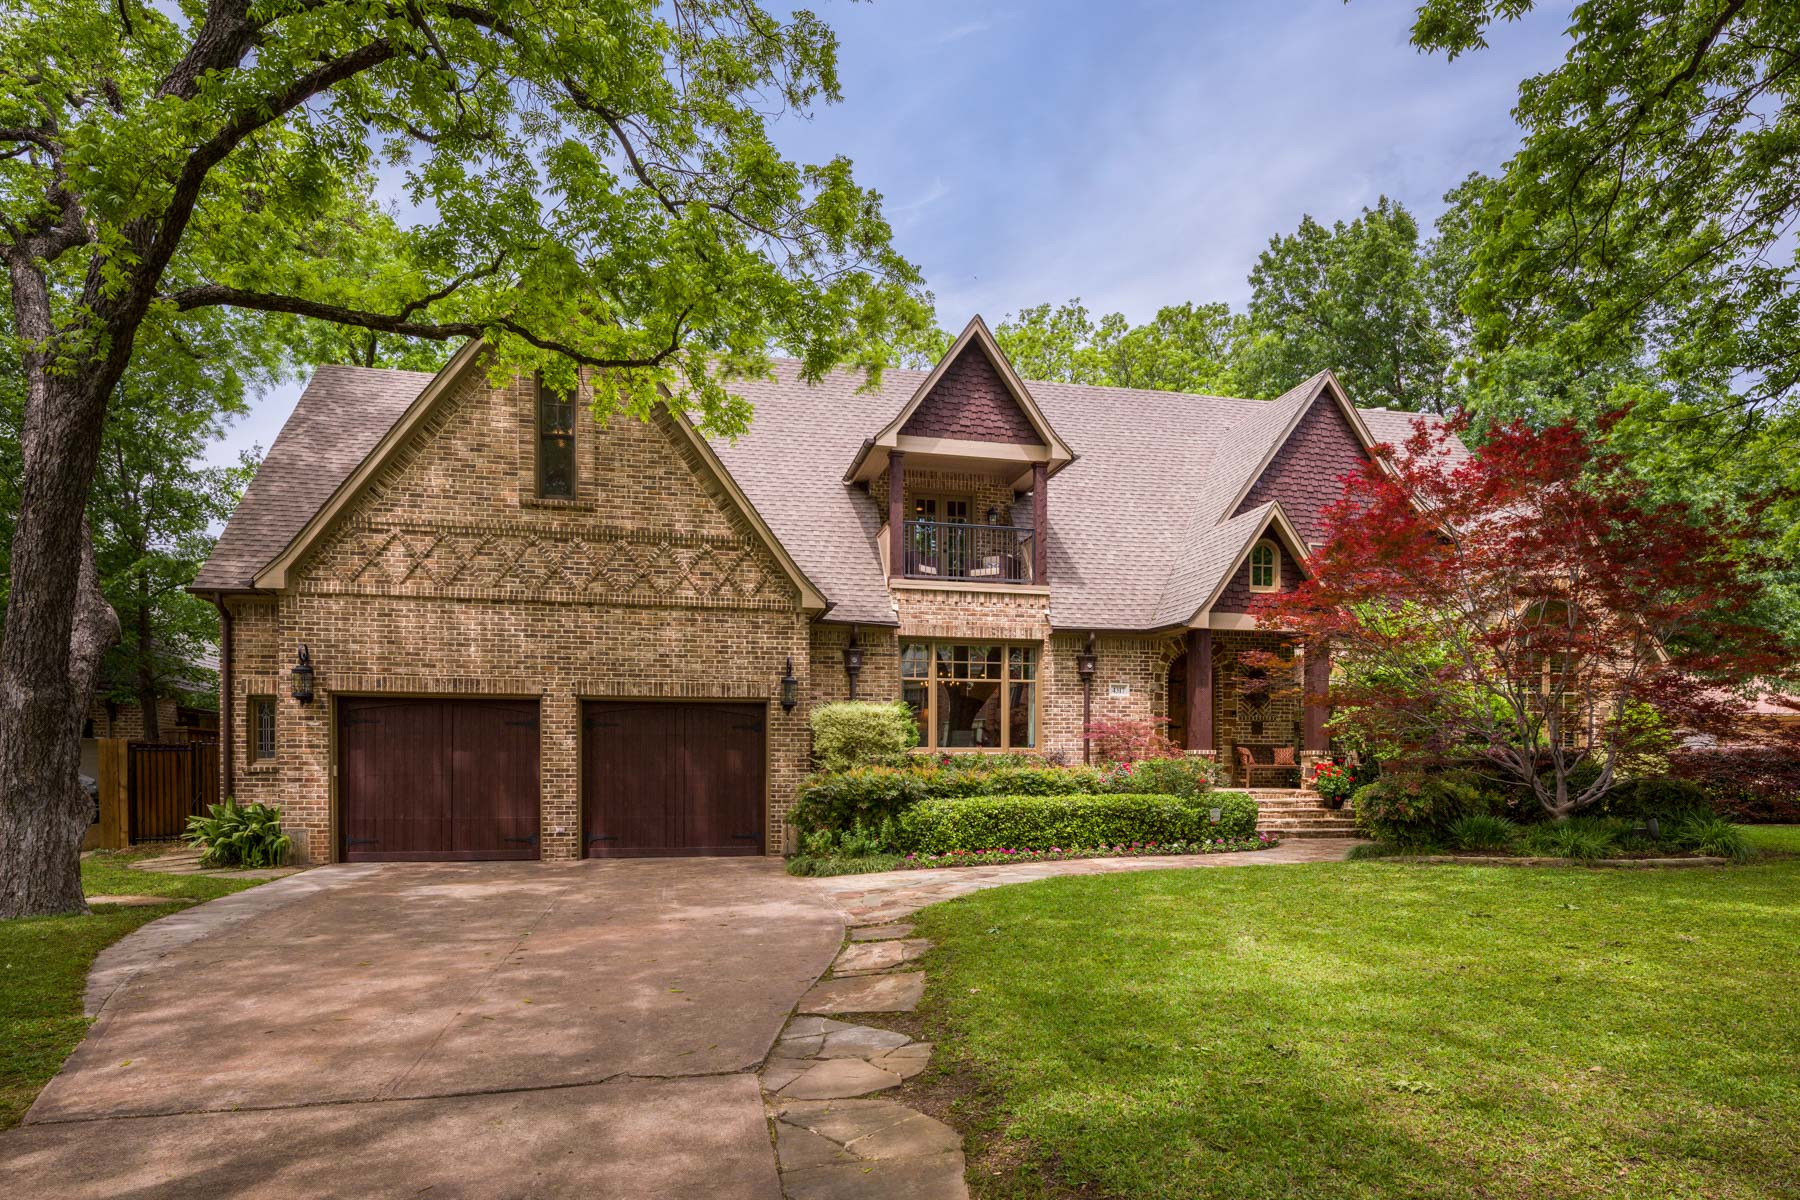 Single Family Home for Sale at Beautiful Home in Idyllic Preston Hollow Setting 4317 Manning Ln Dallas, Texas, 75220 United States